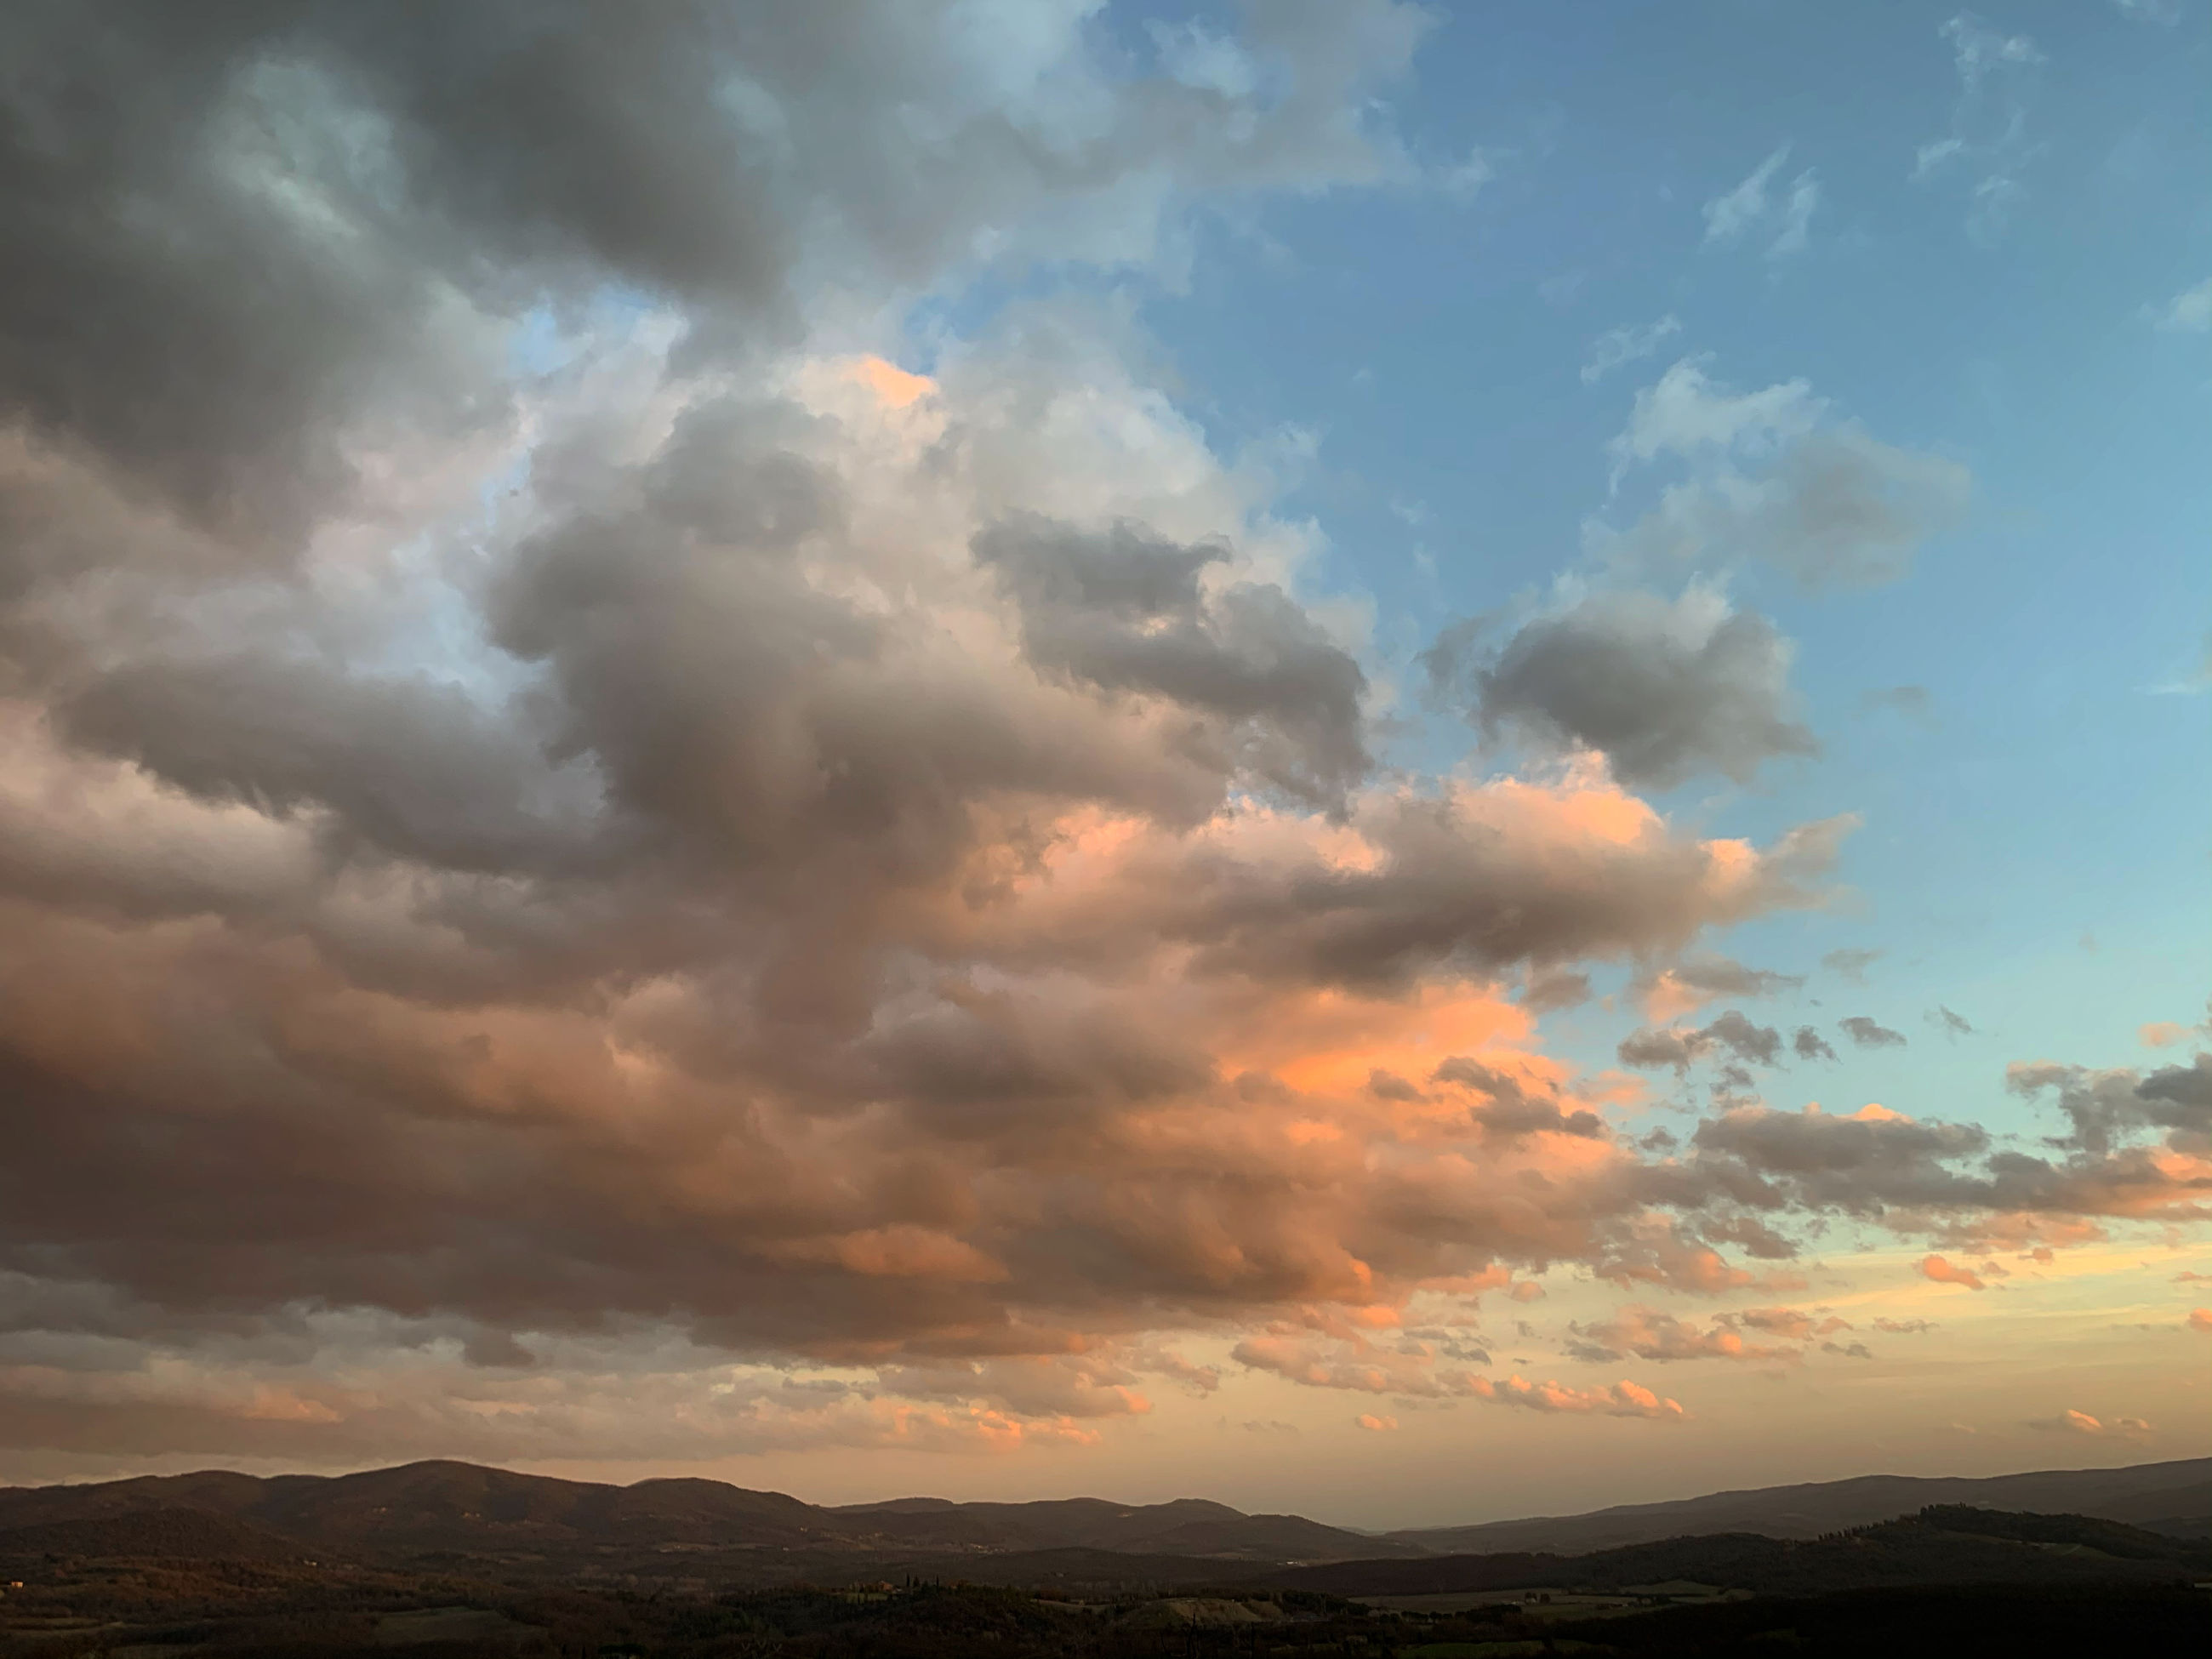 cloud - sky, sky, scenics - nature, beauty in nature, sunset, tranquility, tranquil scene, mountain, no people, nature, idyllic, environment, non-urban scene, landscape, orange color, silhouette, outdoors, remote, mountain range, dramatic sky